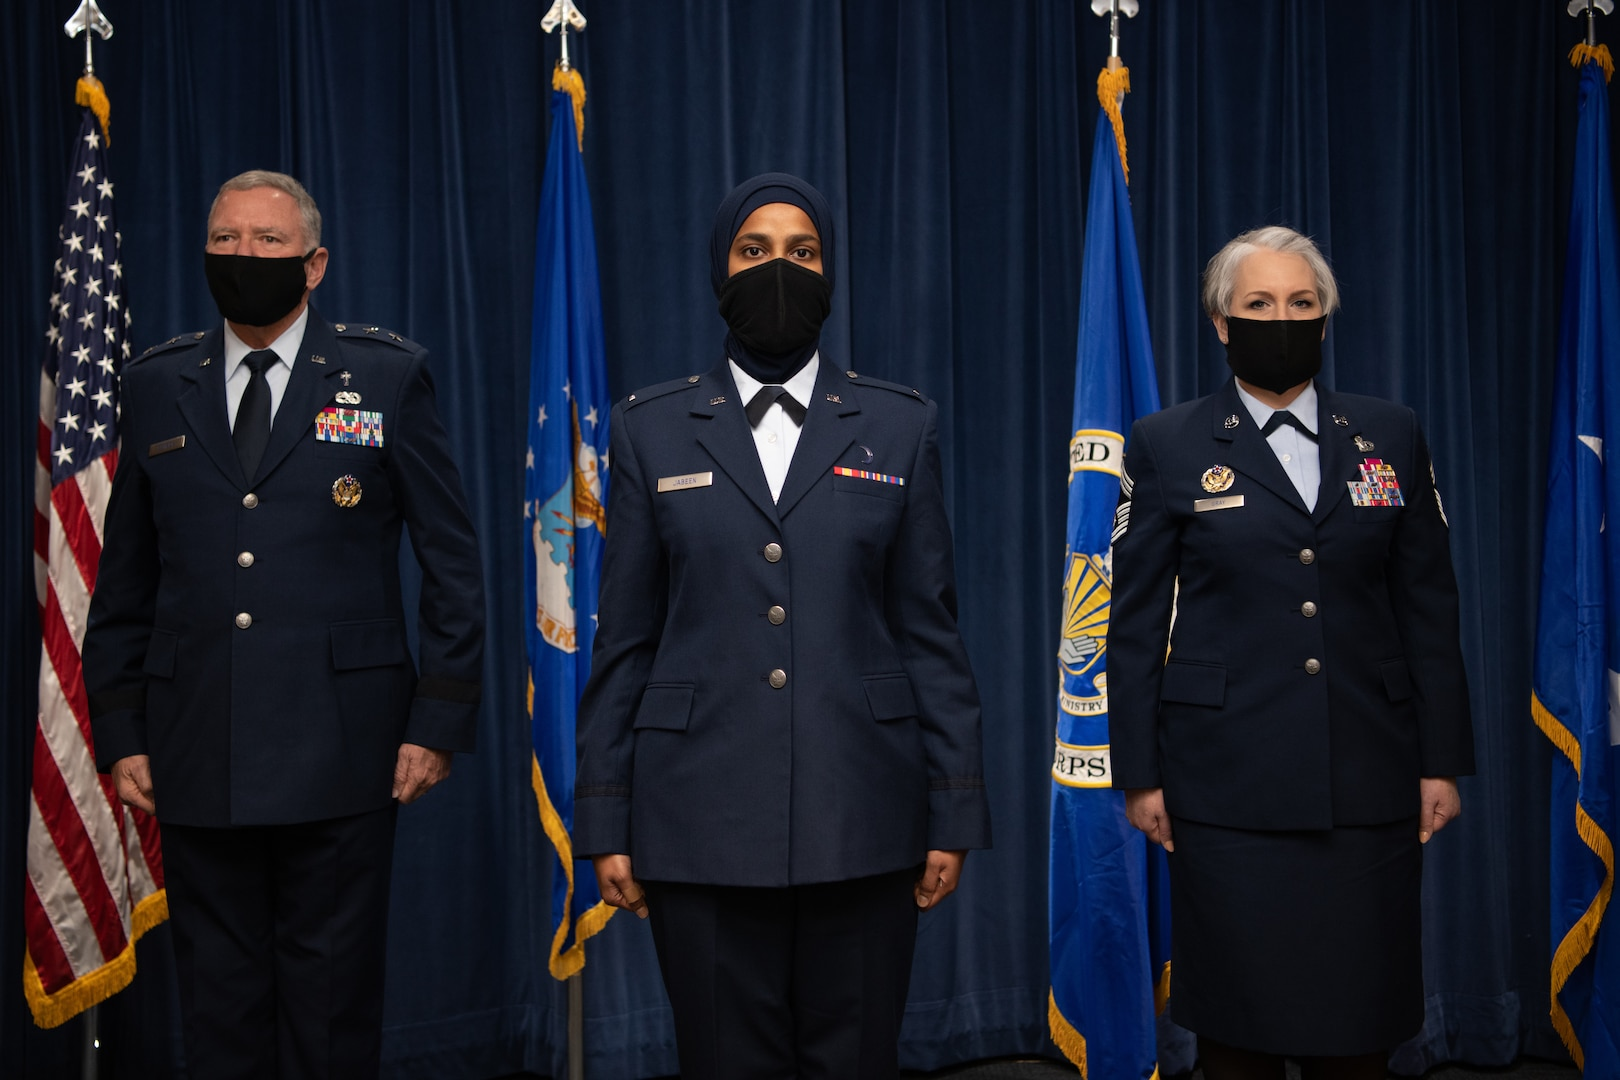 Maj. Gen. Steven Schaik, Air Force chief of chaplains, 1st Lt. Saleha Jabeen, a graduate of Basic Chaplain Course Class 21A, and Chief Master Sgt. Natalie Gray, Air Force Chaplain Corps senior enlisted advisor and religious affairs career field manager, pose for a photo during the graduation ceremony Feb. 5, 2021, at the Ira C. Eaker Center for Leadership Development on Maxwell Air Force Base, Ala. Schaik and Gray congratulated each graduate of the Basic Chaplain Course onstage as they received their chaplain coin.